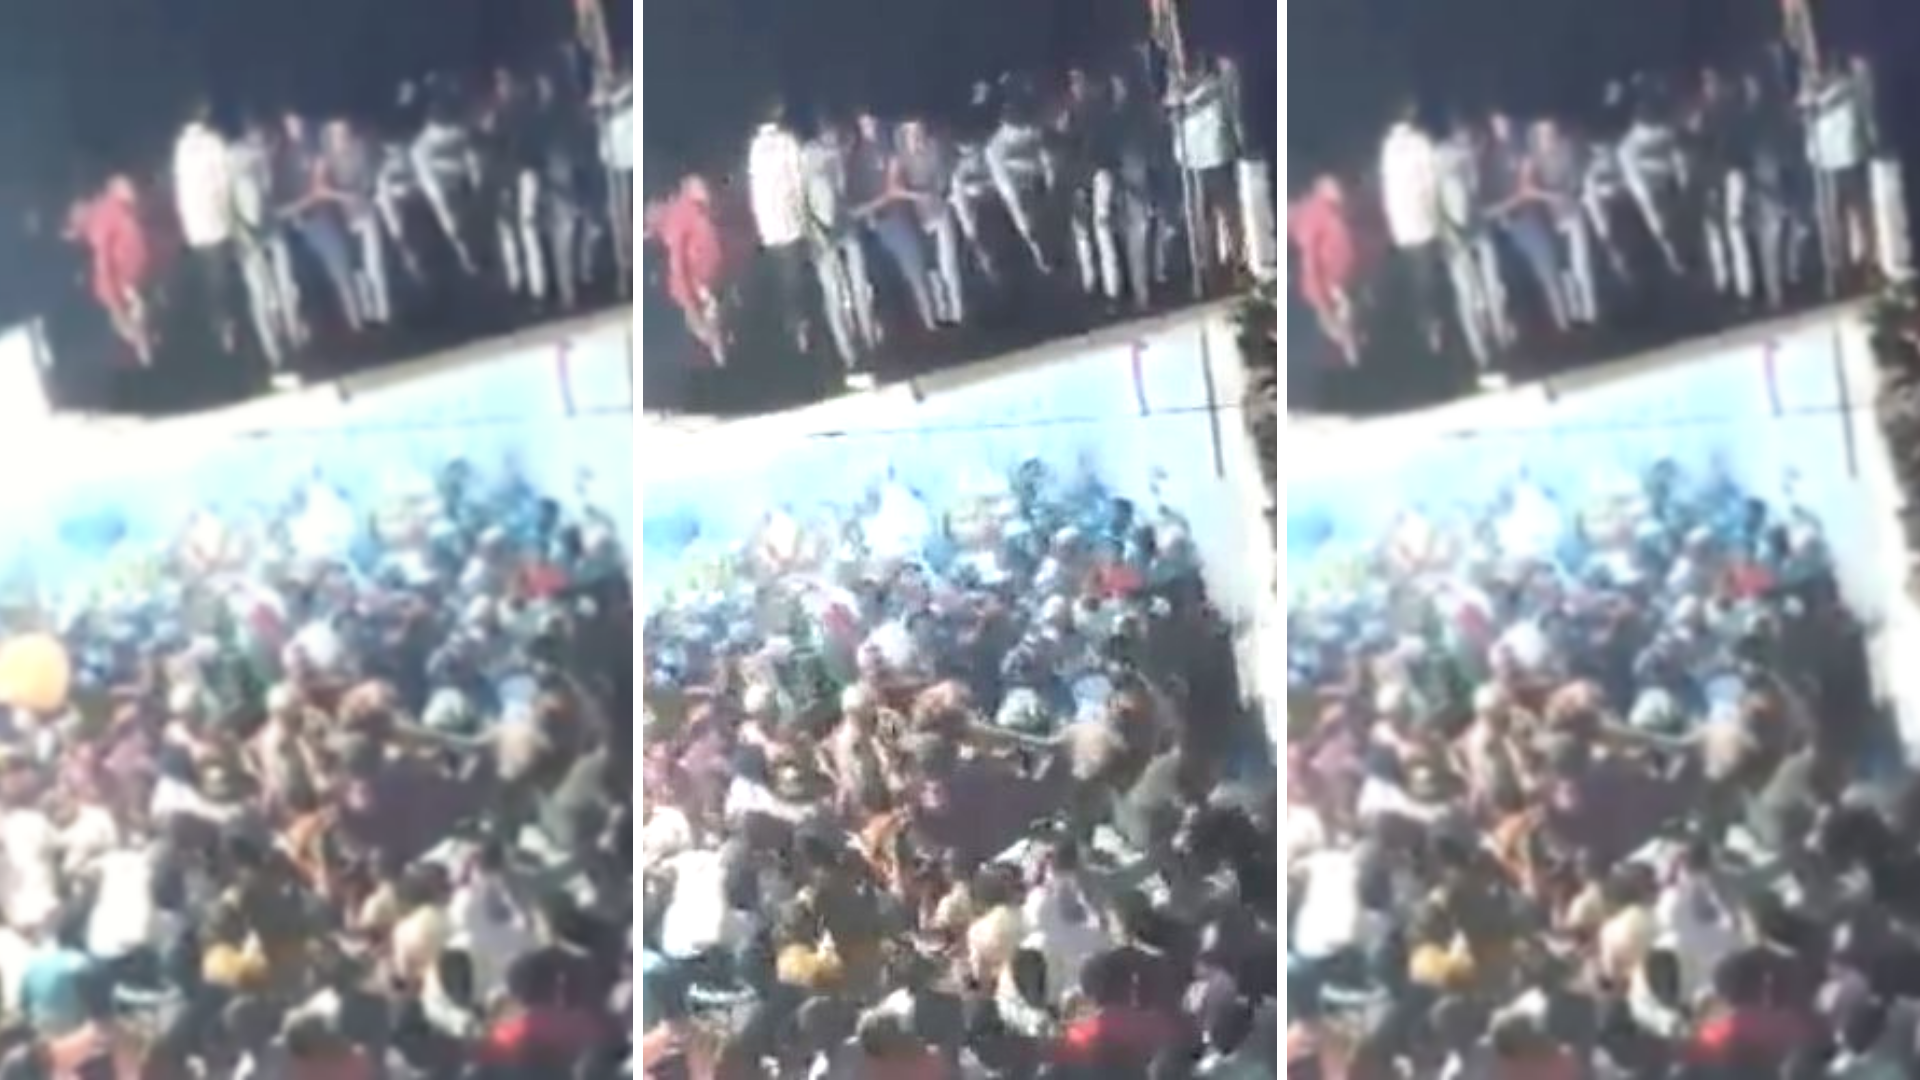 20 Injured as Roof Collapses During Muharram Procession in Andhra